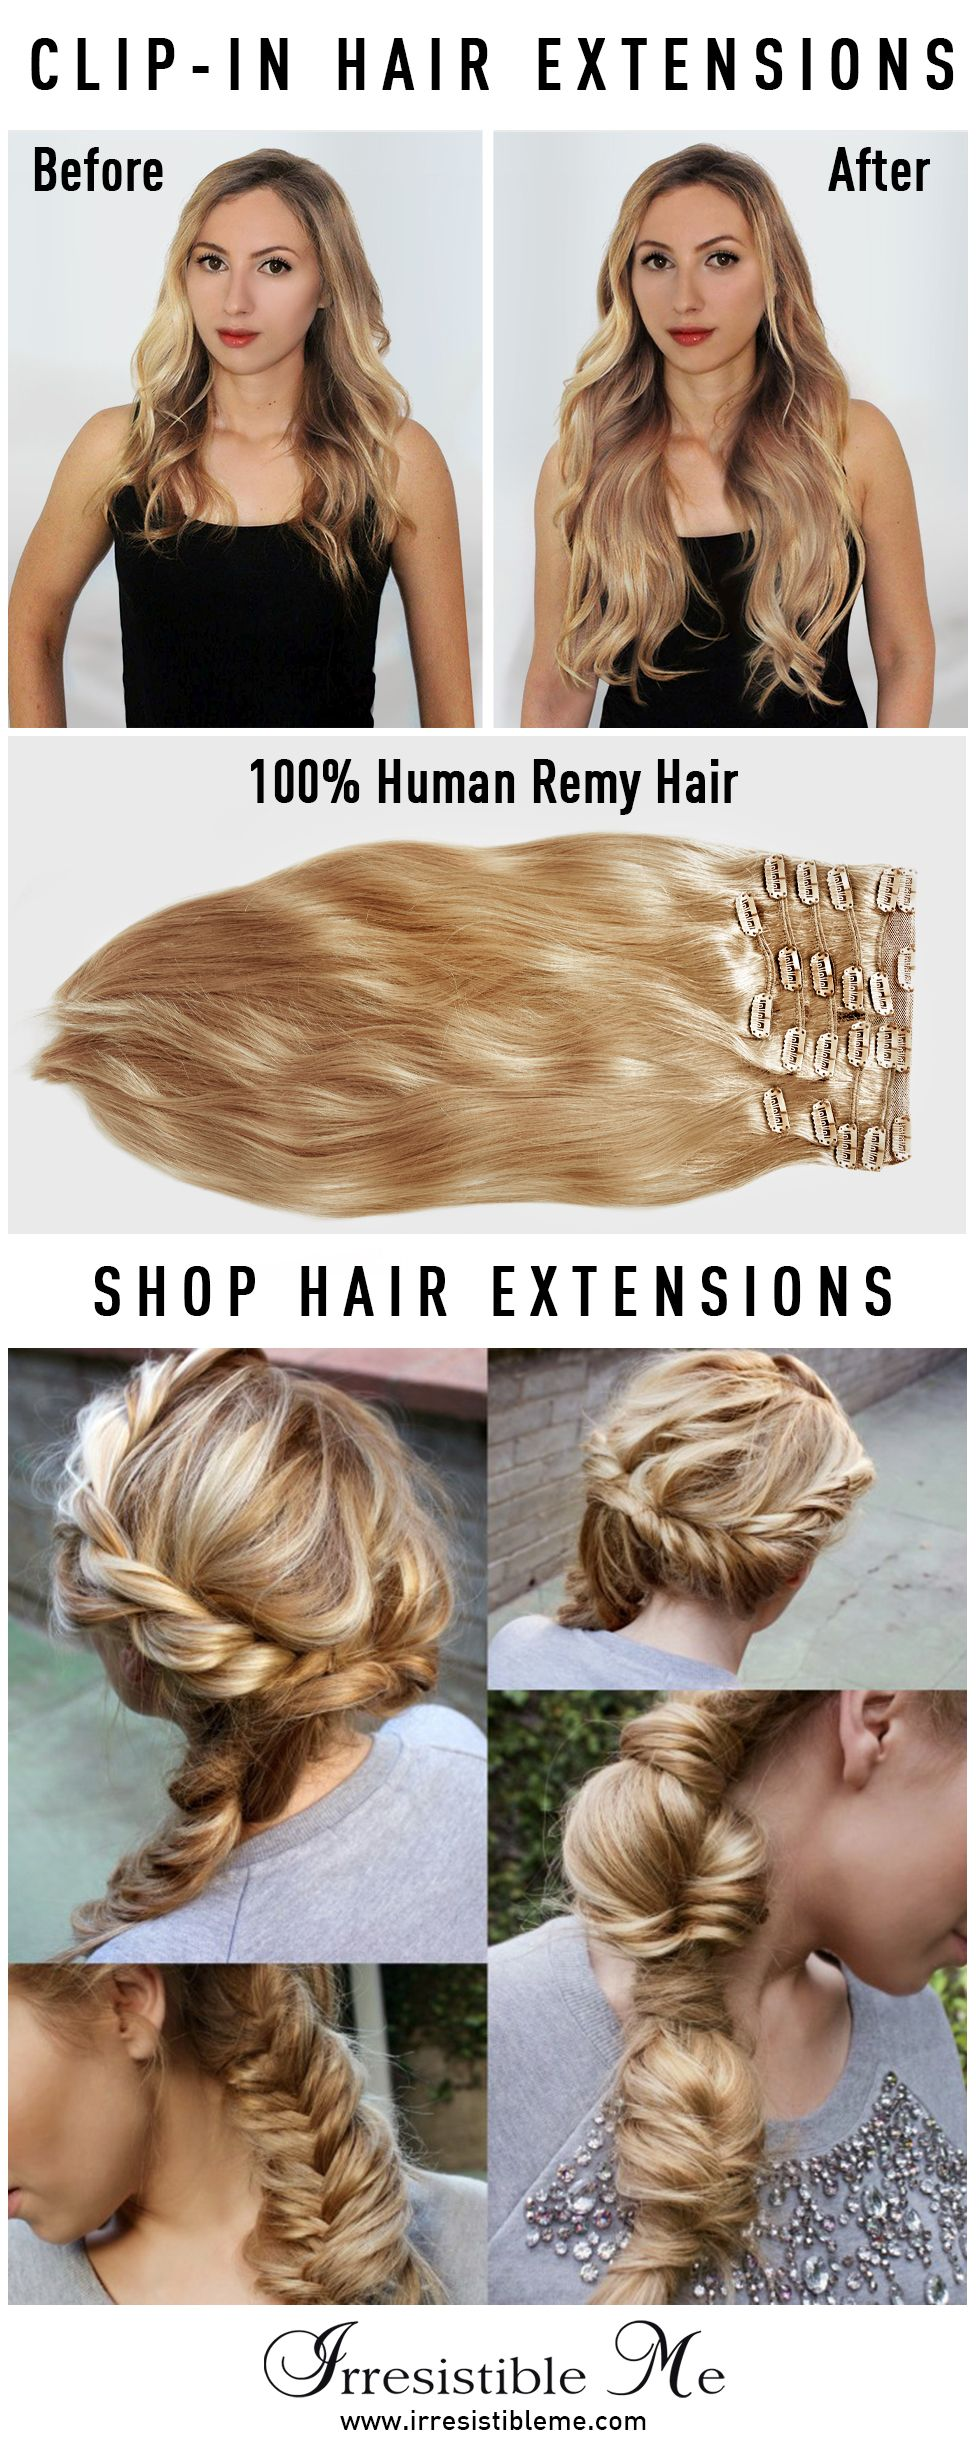 The Perfect Day Starts With Cute Hair Try A Dramatic Hairstyle Change With Irresistible Me 100 Hu Clip In Hair Extensions Hair Extensions Beautiful Long Hair